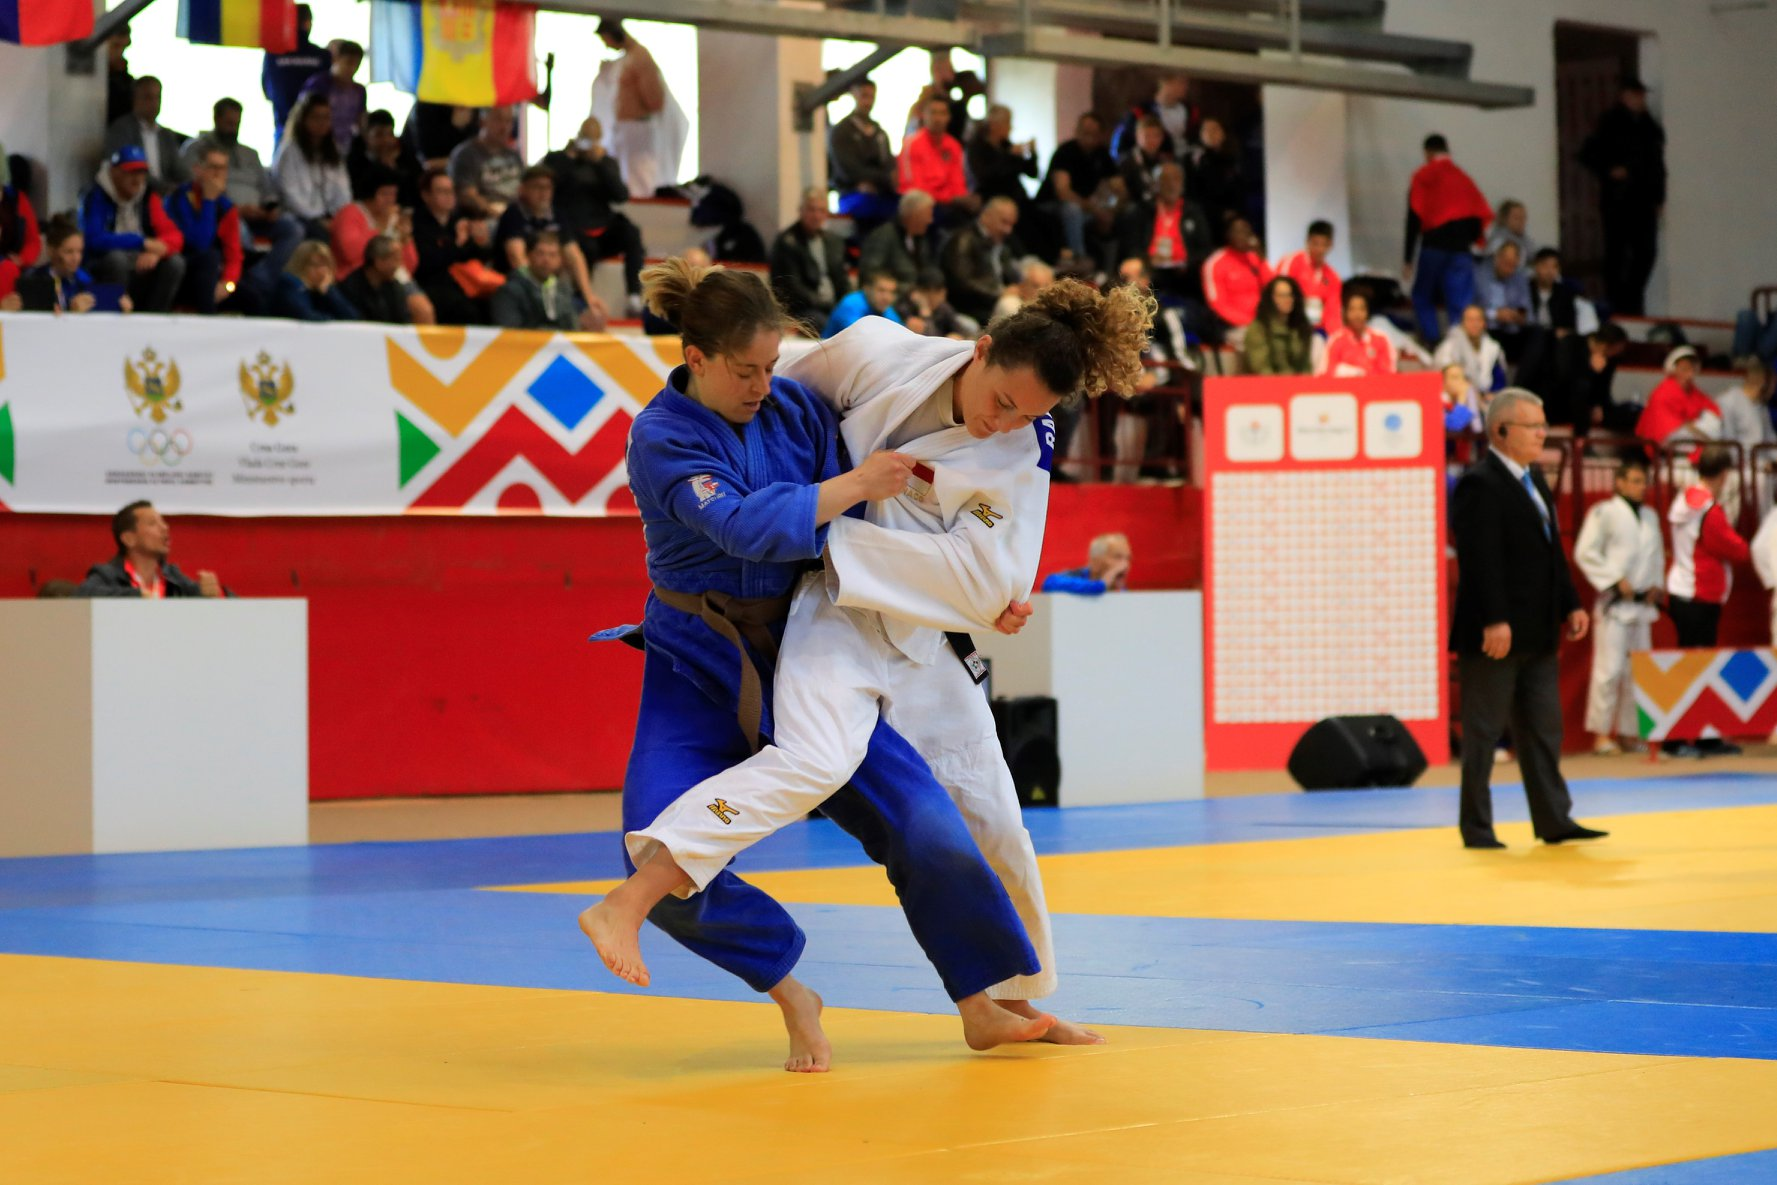 Nikola Evripidou in action - Photo: Cyprus Olympic Committee